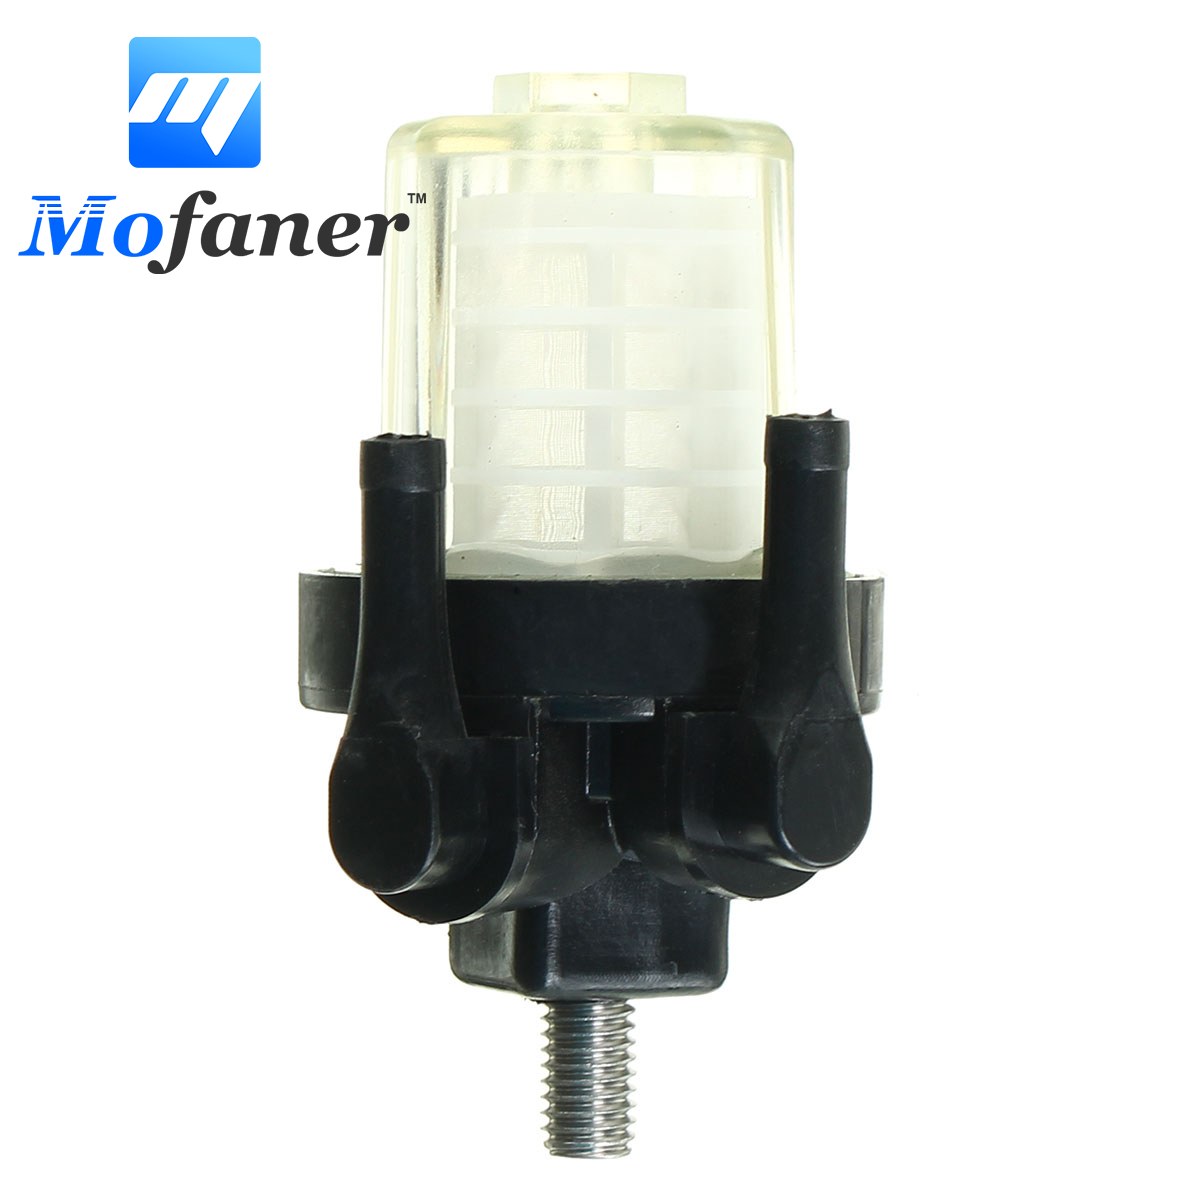 Motorcycle Outboard Fuel Filter Assy For Yamaha Motor Fit Aveo Location 15hp 30hp 61n 24560 00 Size 86 X 56cm In From Automobiles Motorcycles